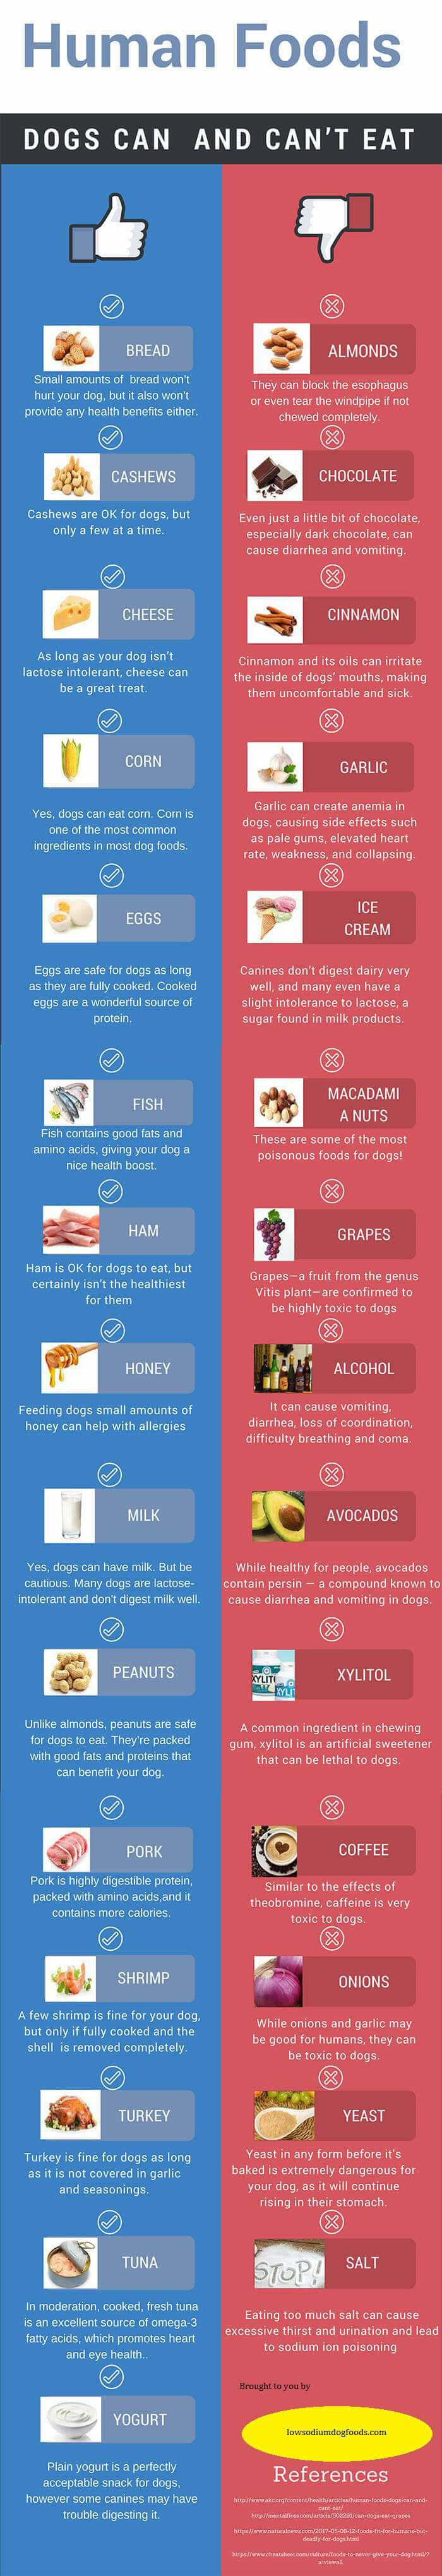 Exceptional Foods That Dogs Can Ir Food Can Dogs Have Avocado Fruit Cannot Eat Infographic Foods Toxic To Dogs Can Dogs Have Avocado bark post Can Dogs Have Avocado